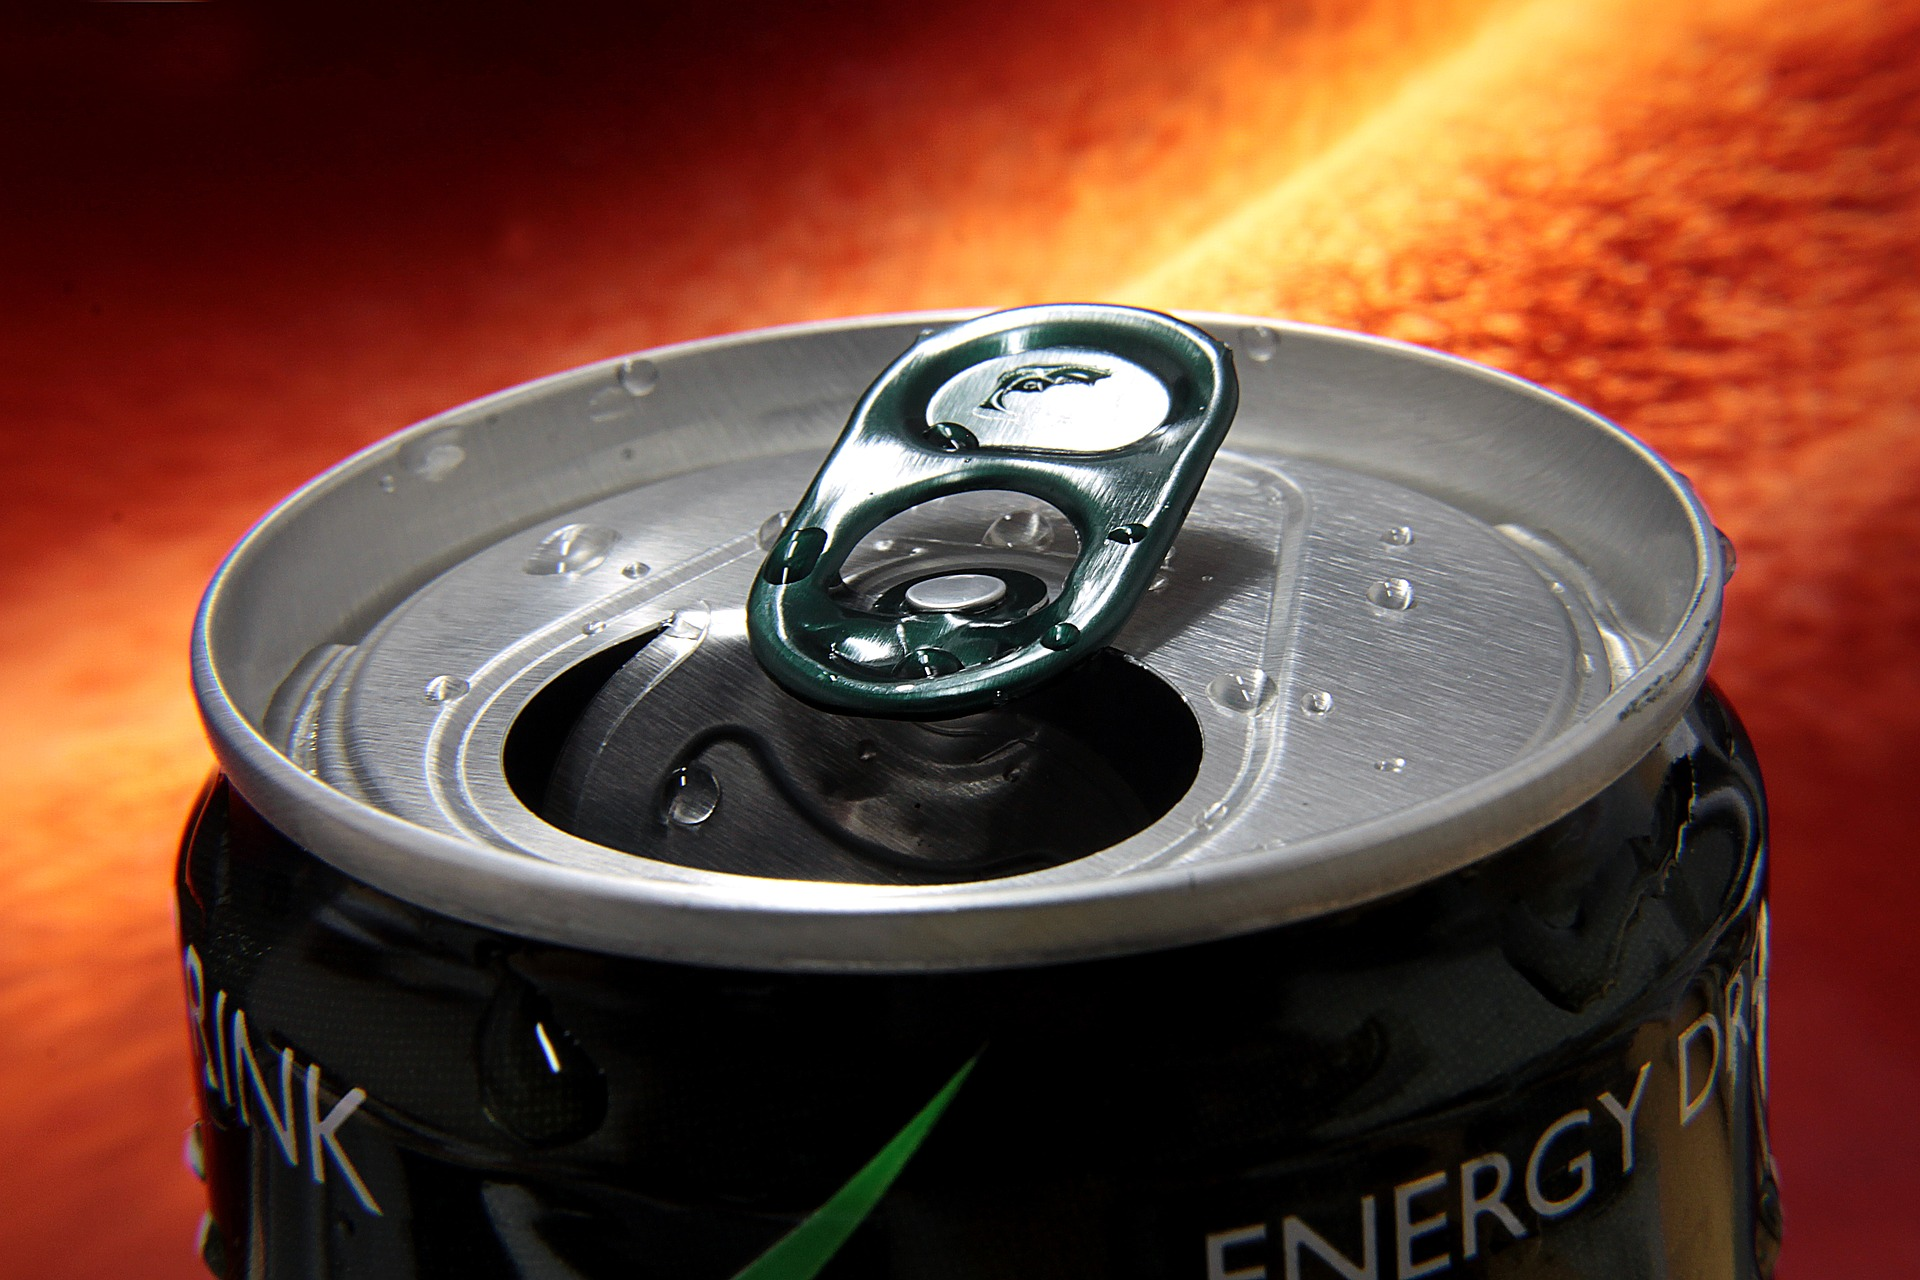 Does energy drinks cause kidney stones?